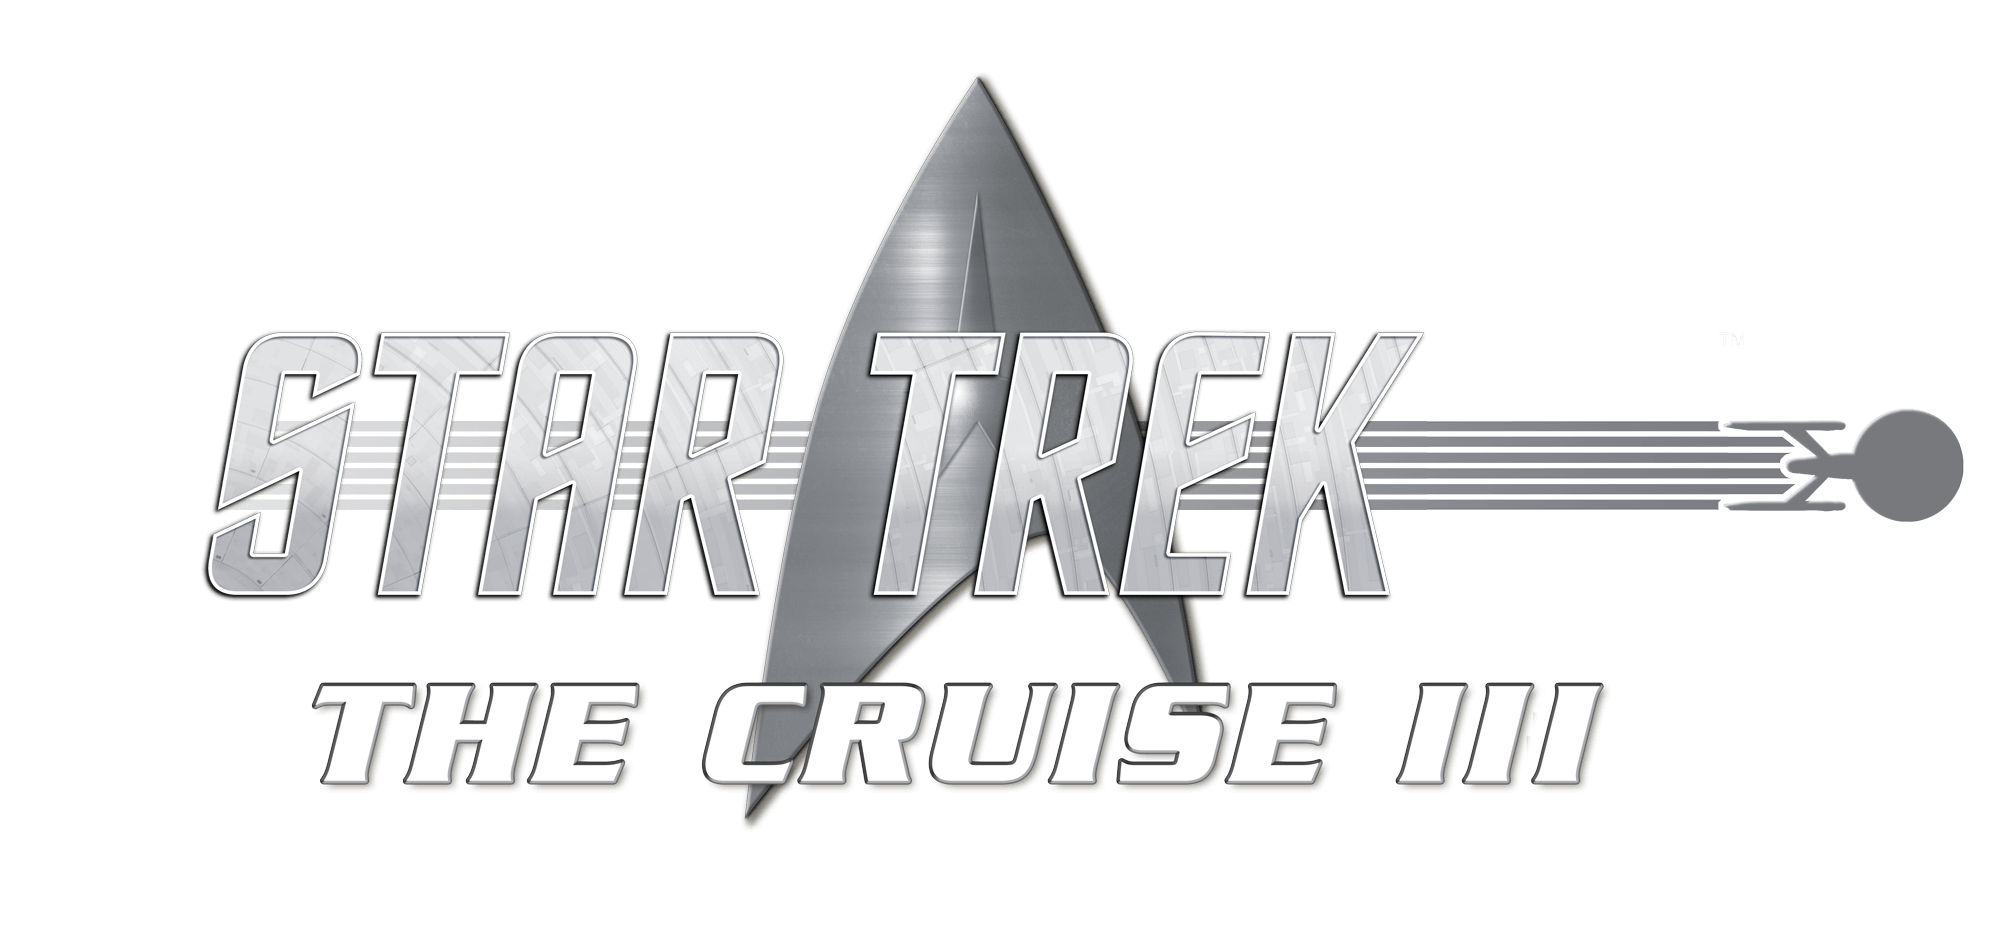 Star Trek: The Cruise III